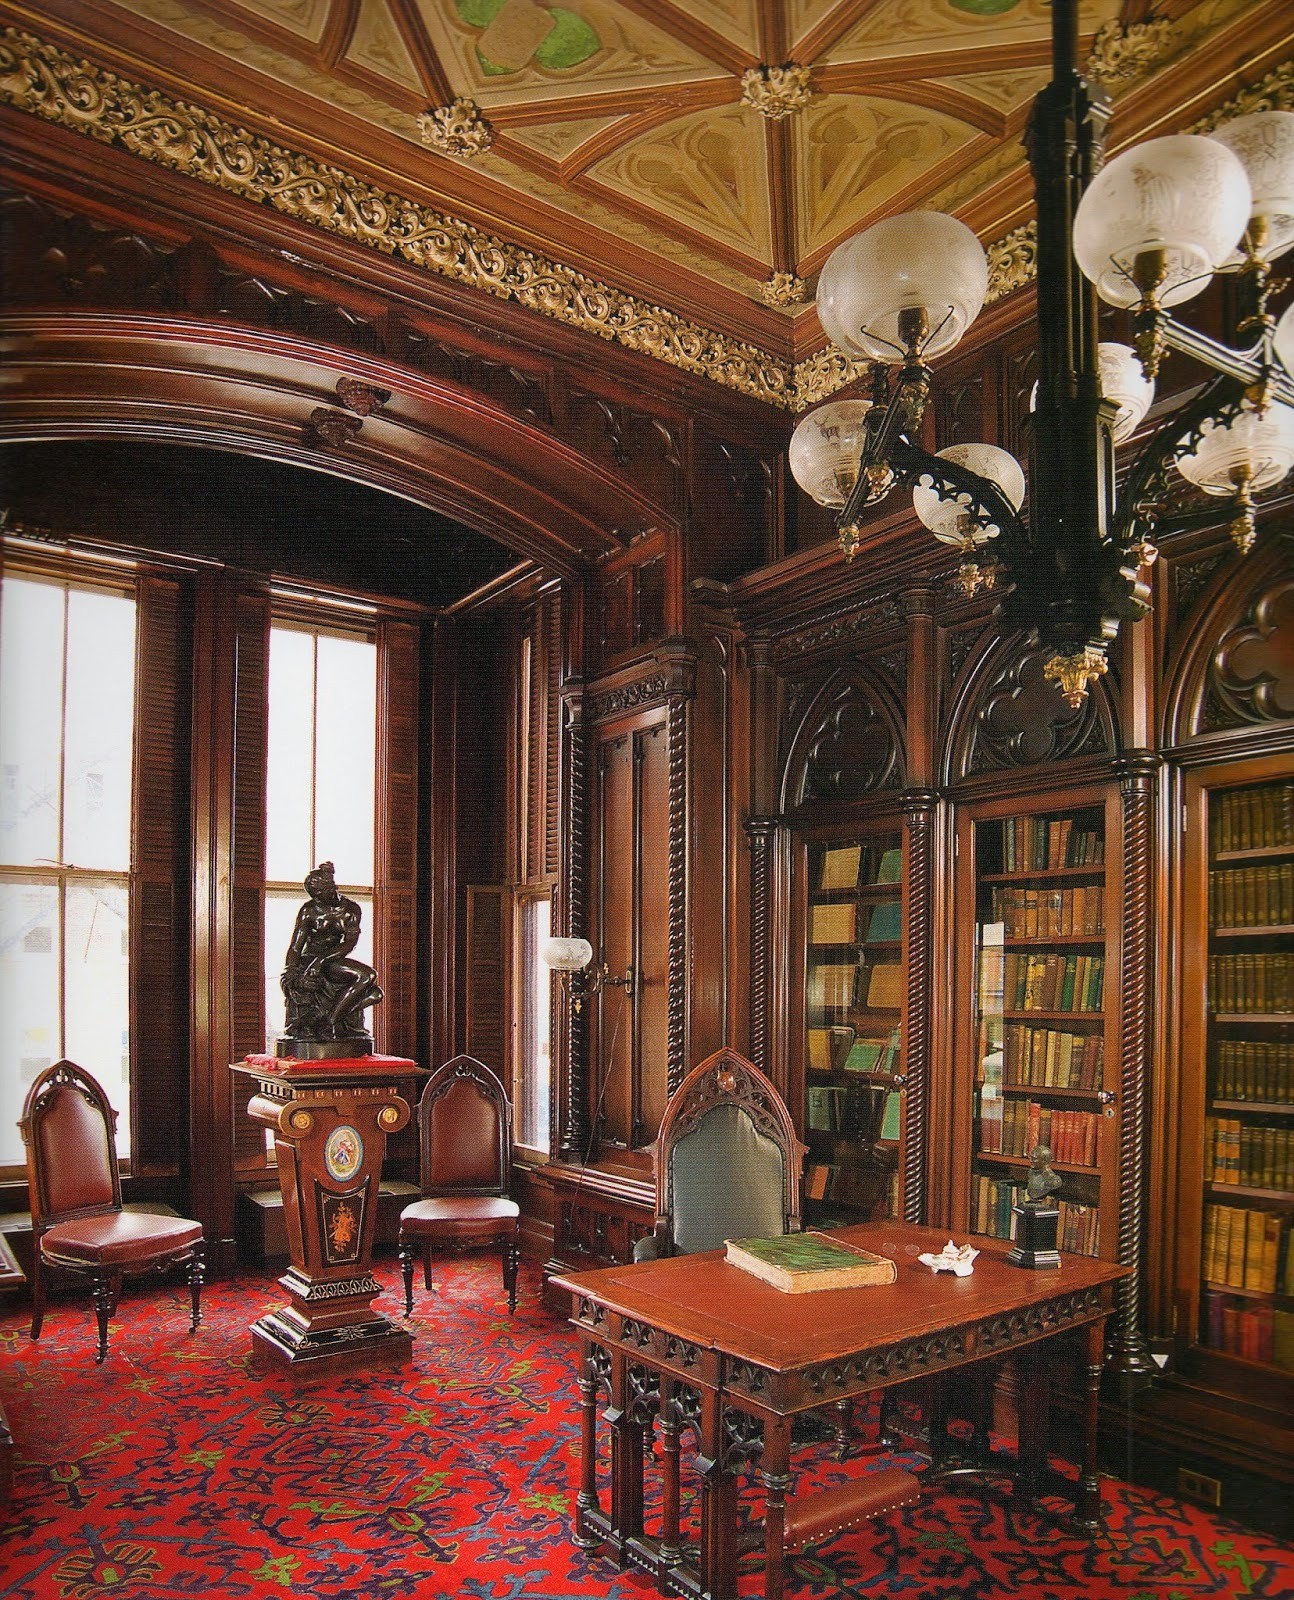 Gothic Revival Library In The Morse Libby Residence, Portland, Maine, Built  1858 1860. Photograph©Victoria Mansion, Portland, Maine.